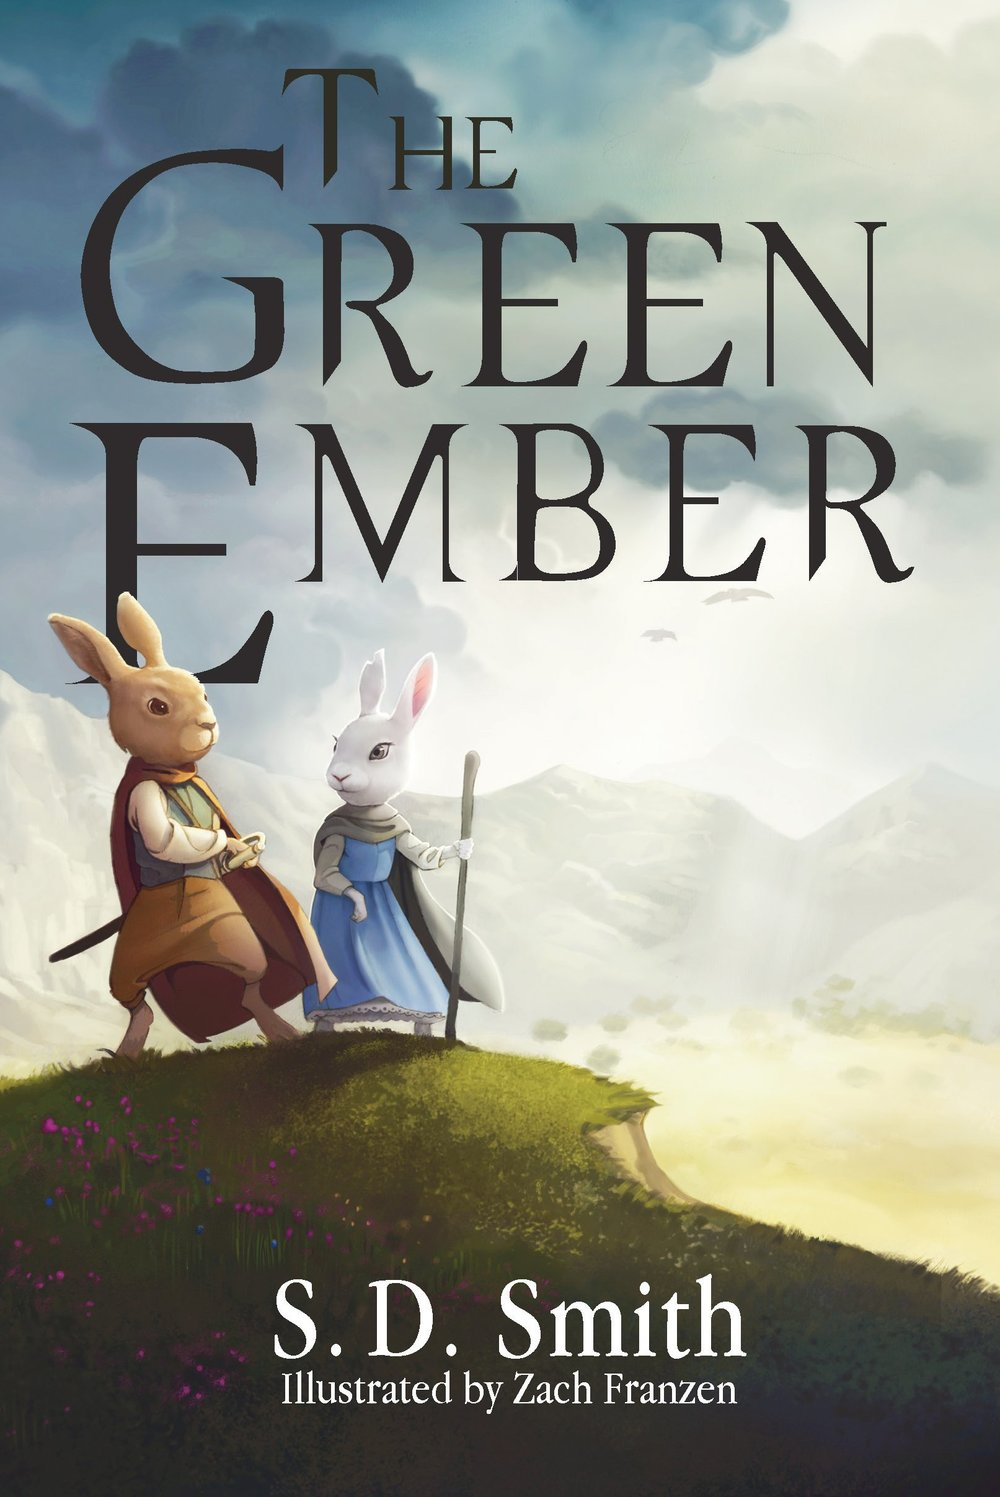 The Green Ember by S. D. Smith